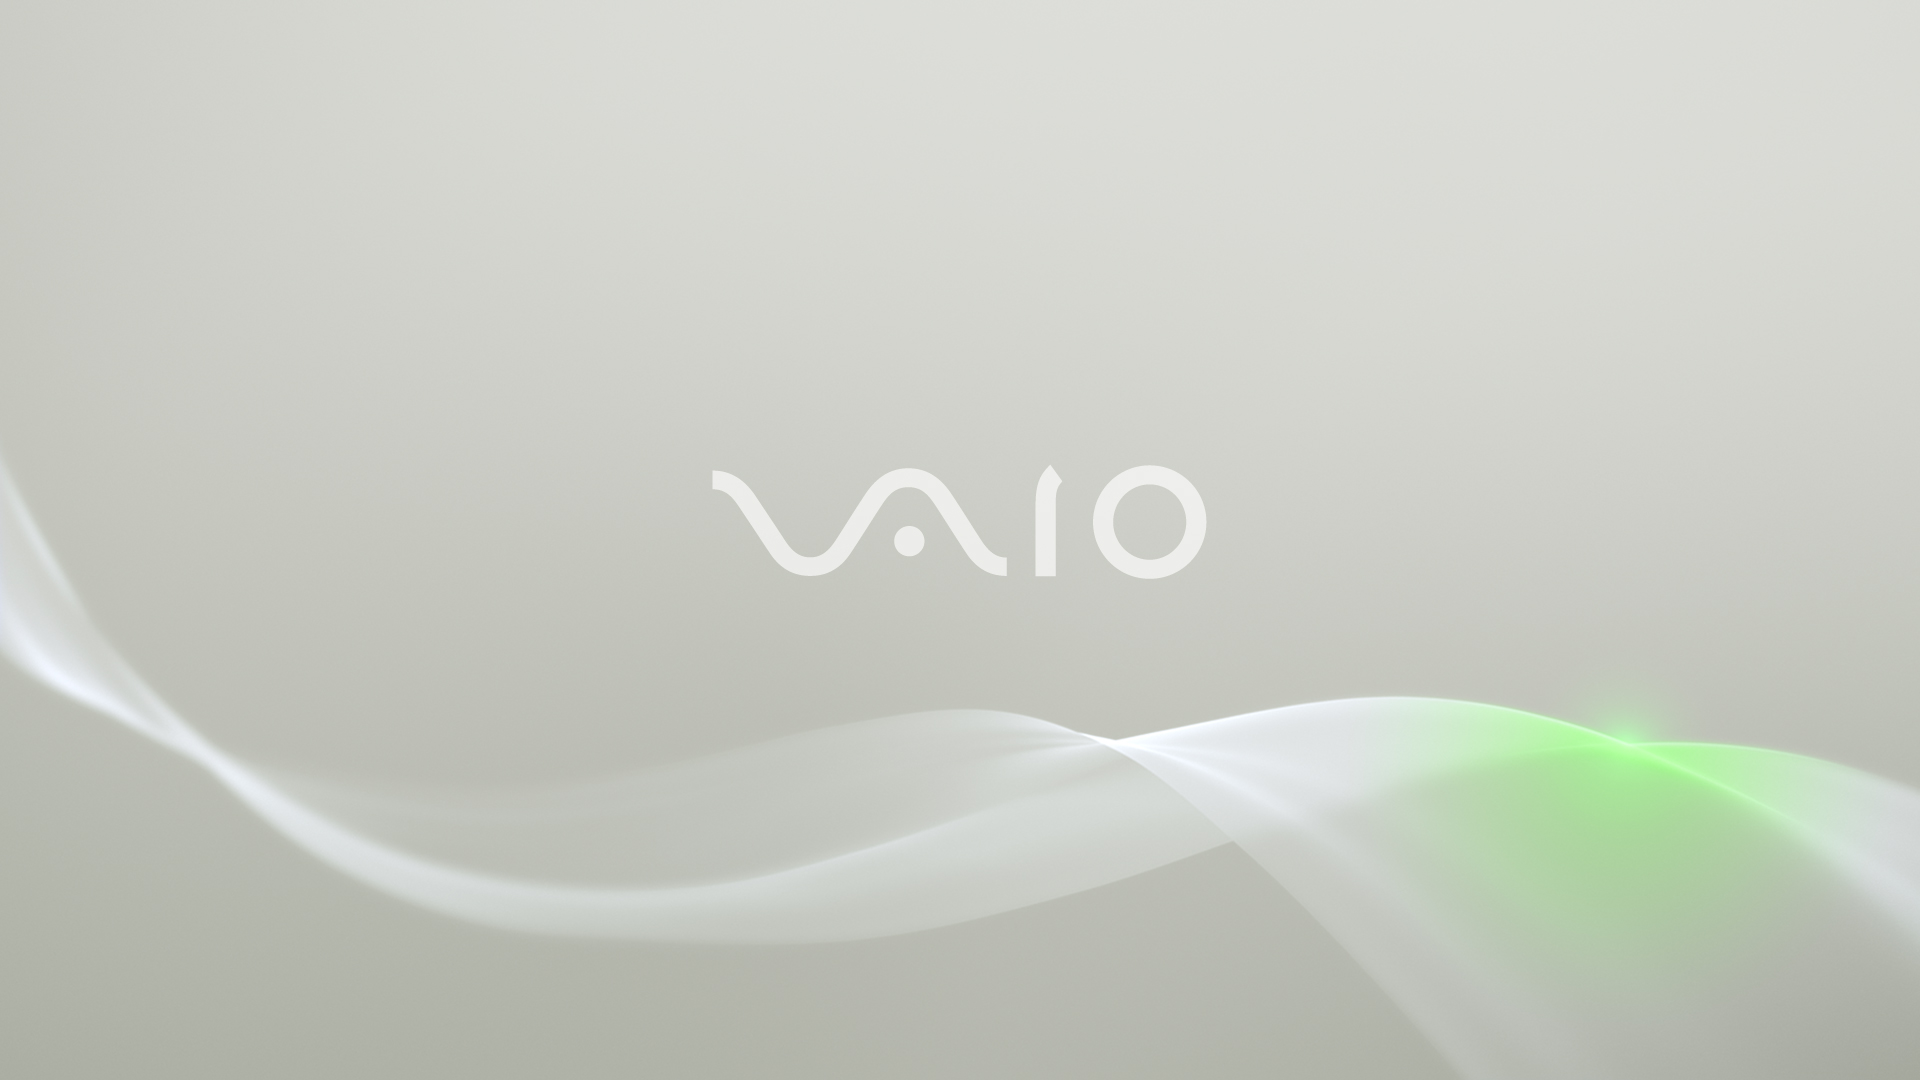 HD Sony Vaio Wallpapers Vaio Backgrounds For Download 1920x1080